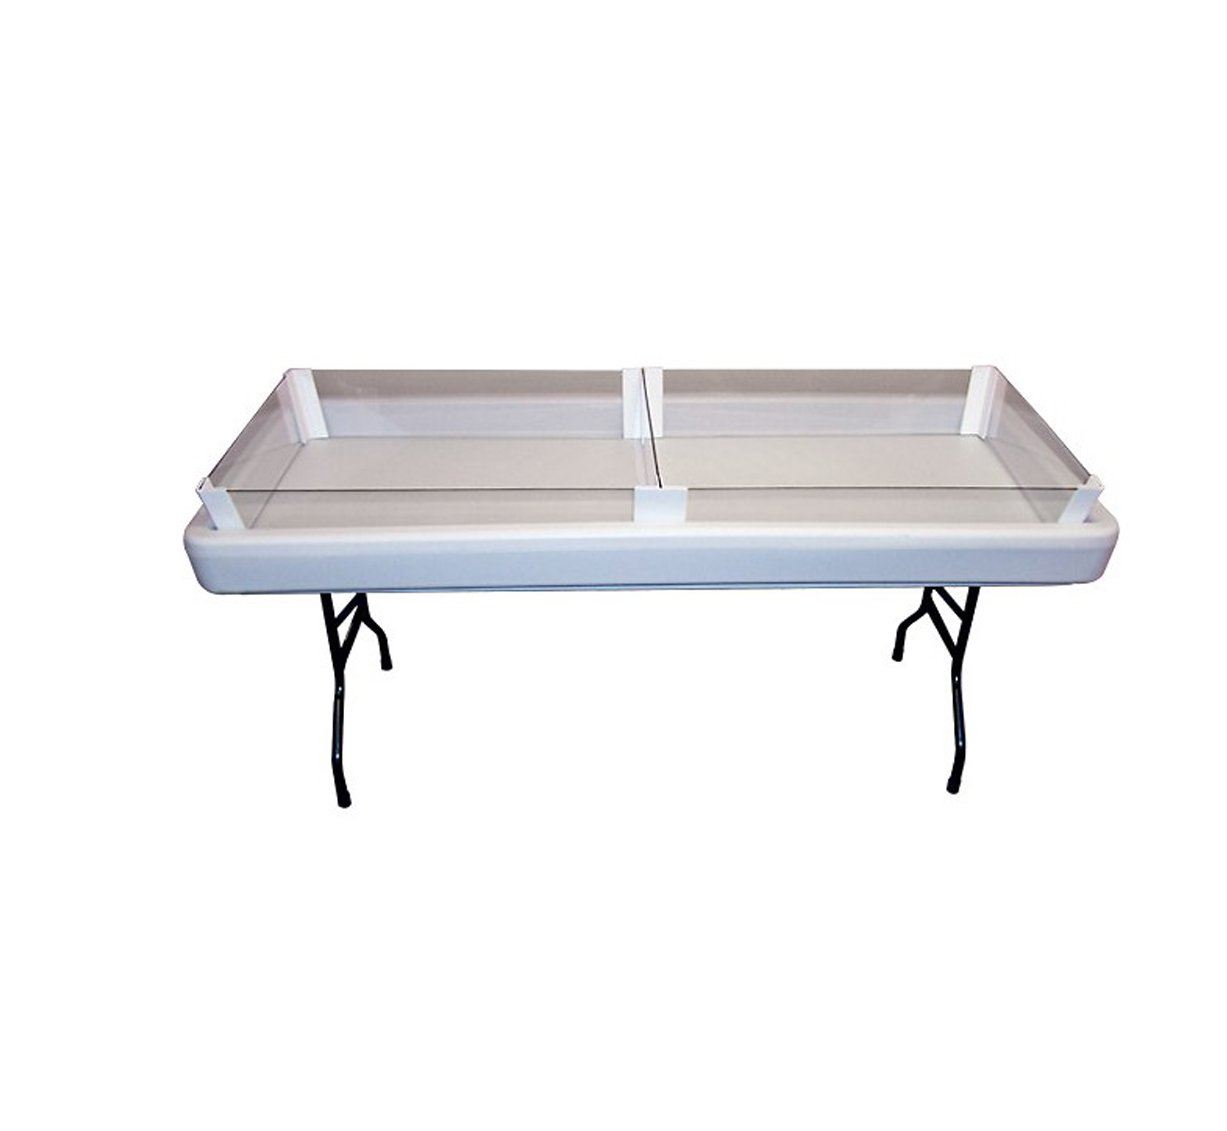 Chillin' Products 8'' Full Depth Extension for Fill 'N Chill Tables - White by Chillin' Products